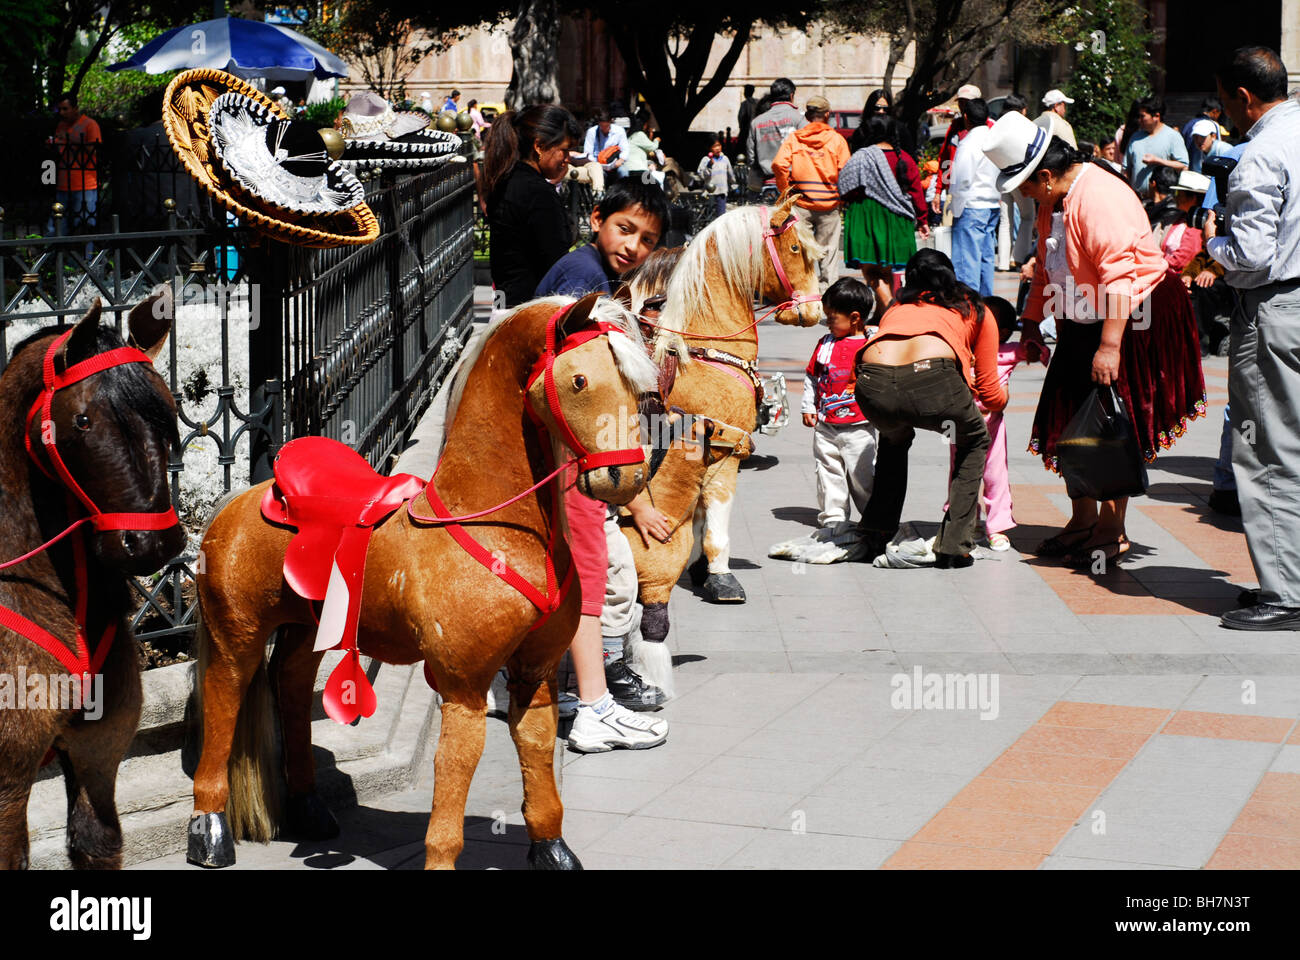 Ecuador, Cuenca, children riding small fake horses on the Park Abdon Calderon with some indigenous women wearing - Stock Image